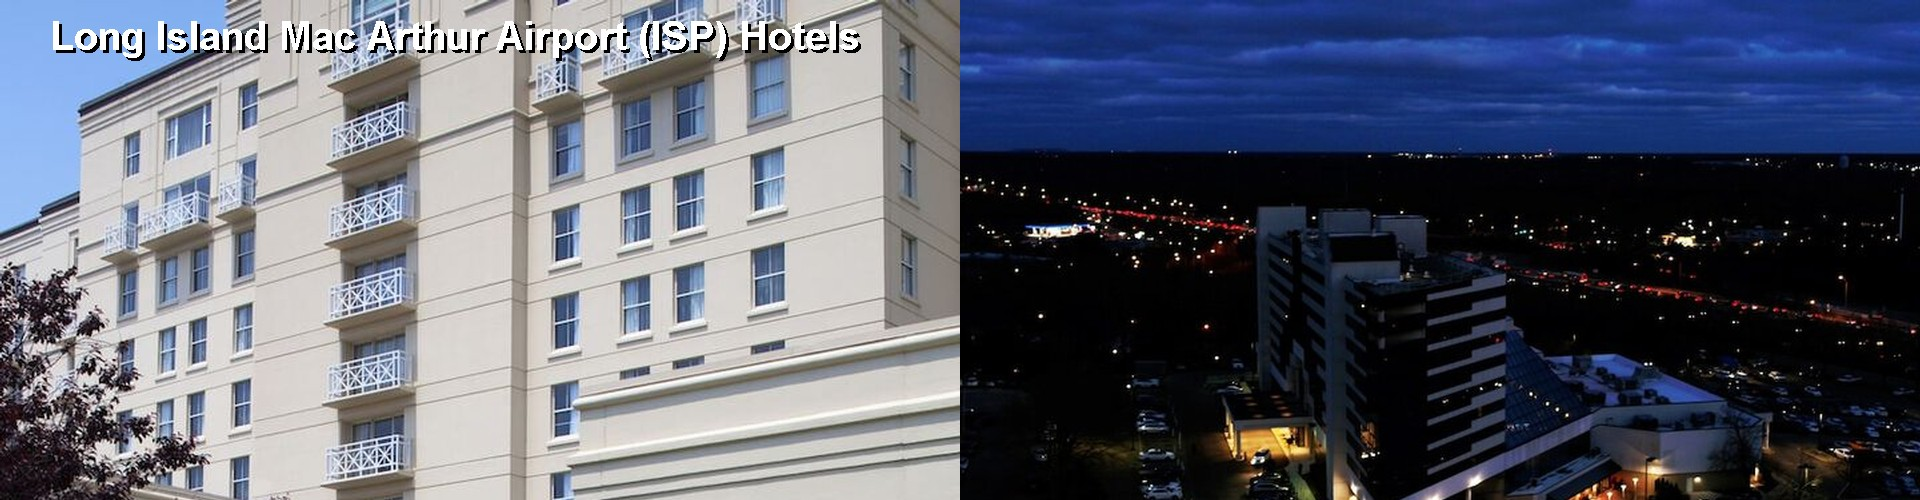 5 Best Hotels Near Long Island Mac Arthur Airport Isp